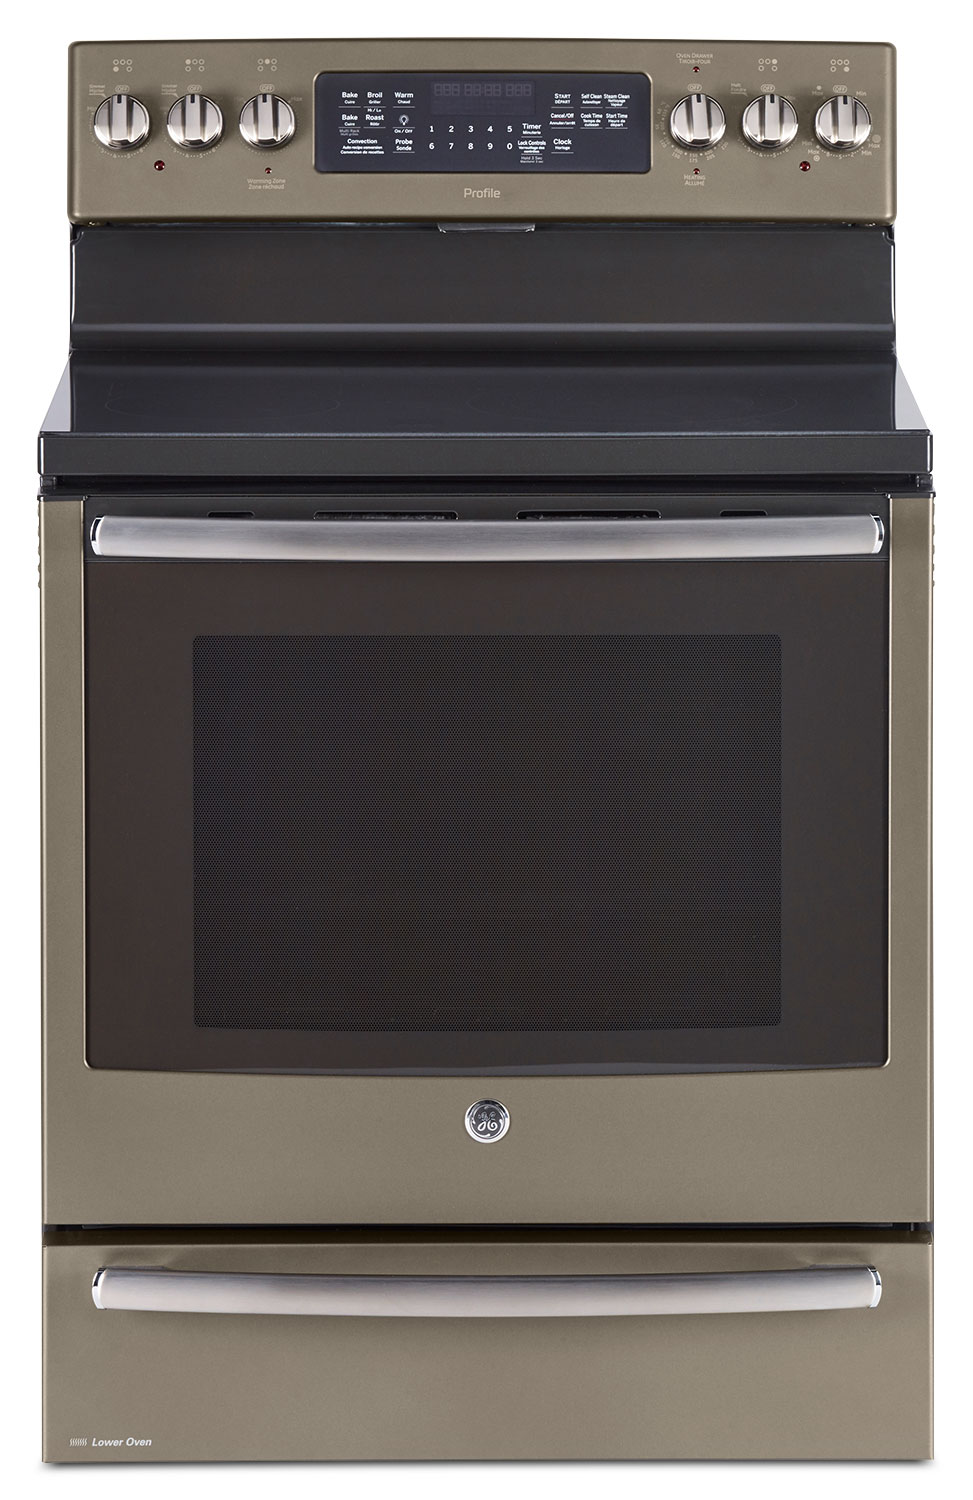 GE 6.2 Cu. Ft. Freestanding Electric Range with Baking Drawer – PCB985EKES